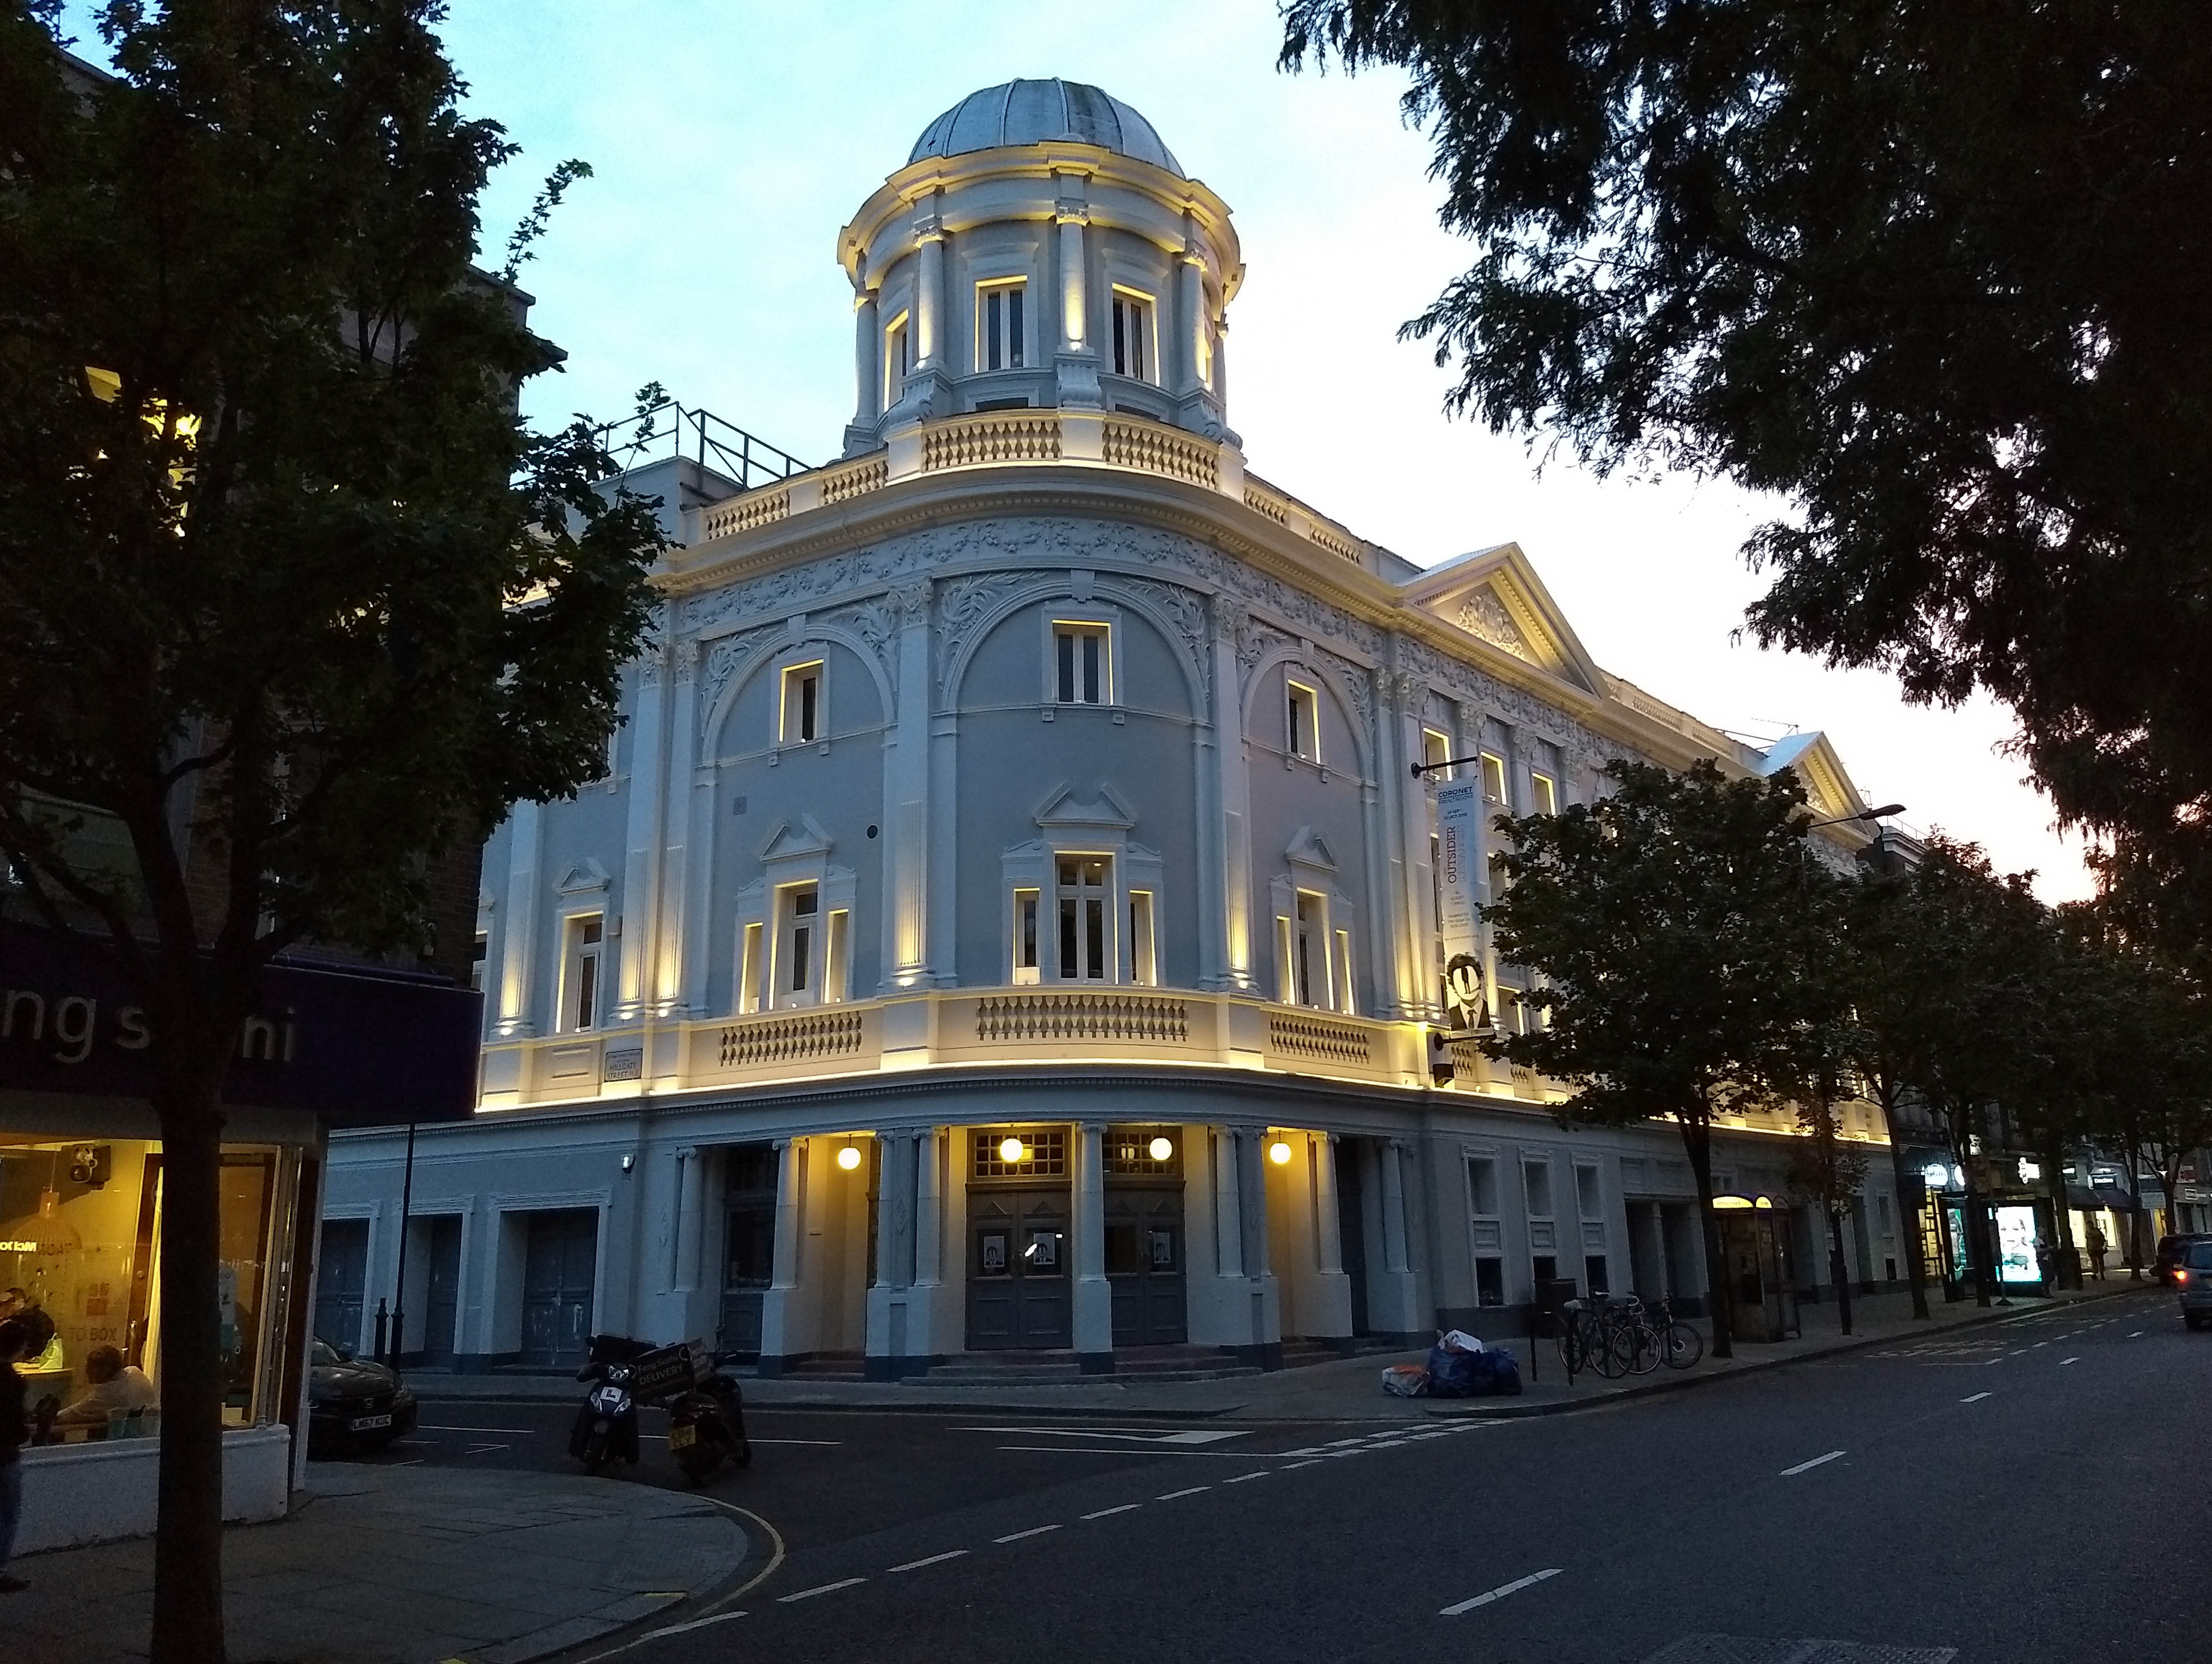 The Coronet Theatre, Notting Hill